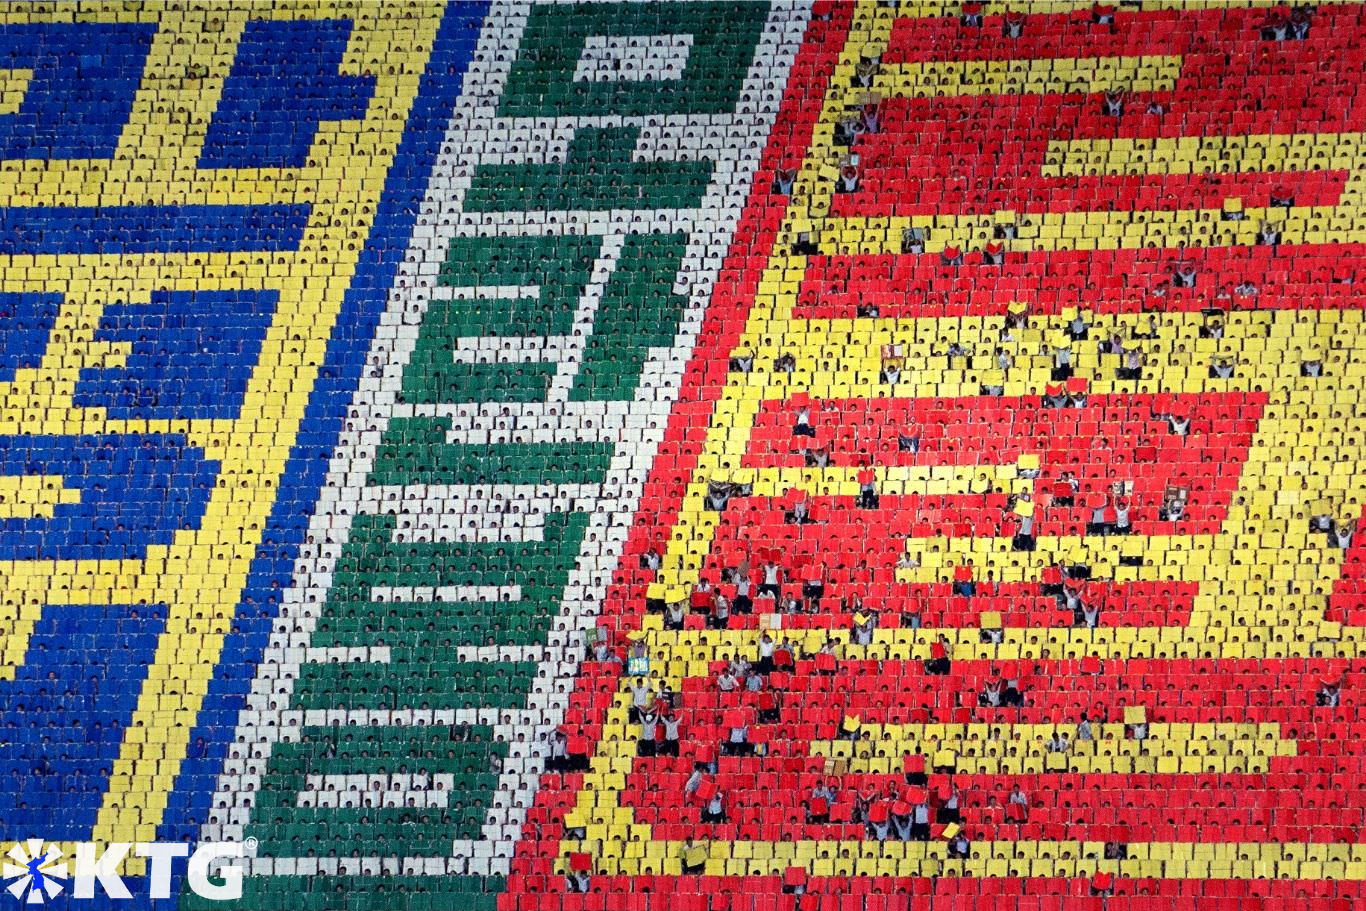 The Mass Games in North Korea have a backdrop of 17,000 students. Each student makes a tiny pixel creating gigantic mosaics. Trip arranged by KTG Travel